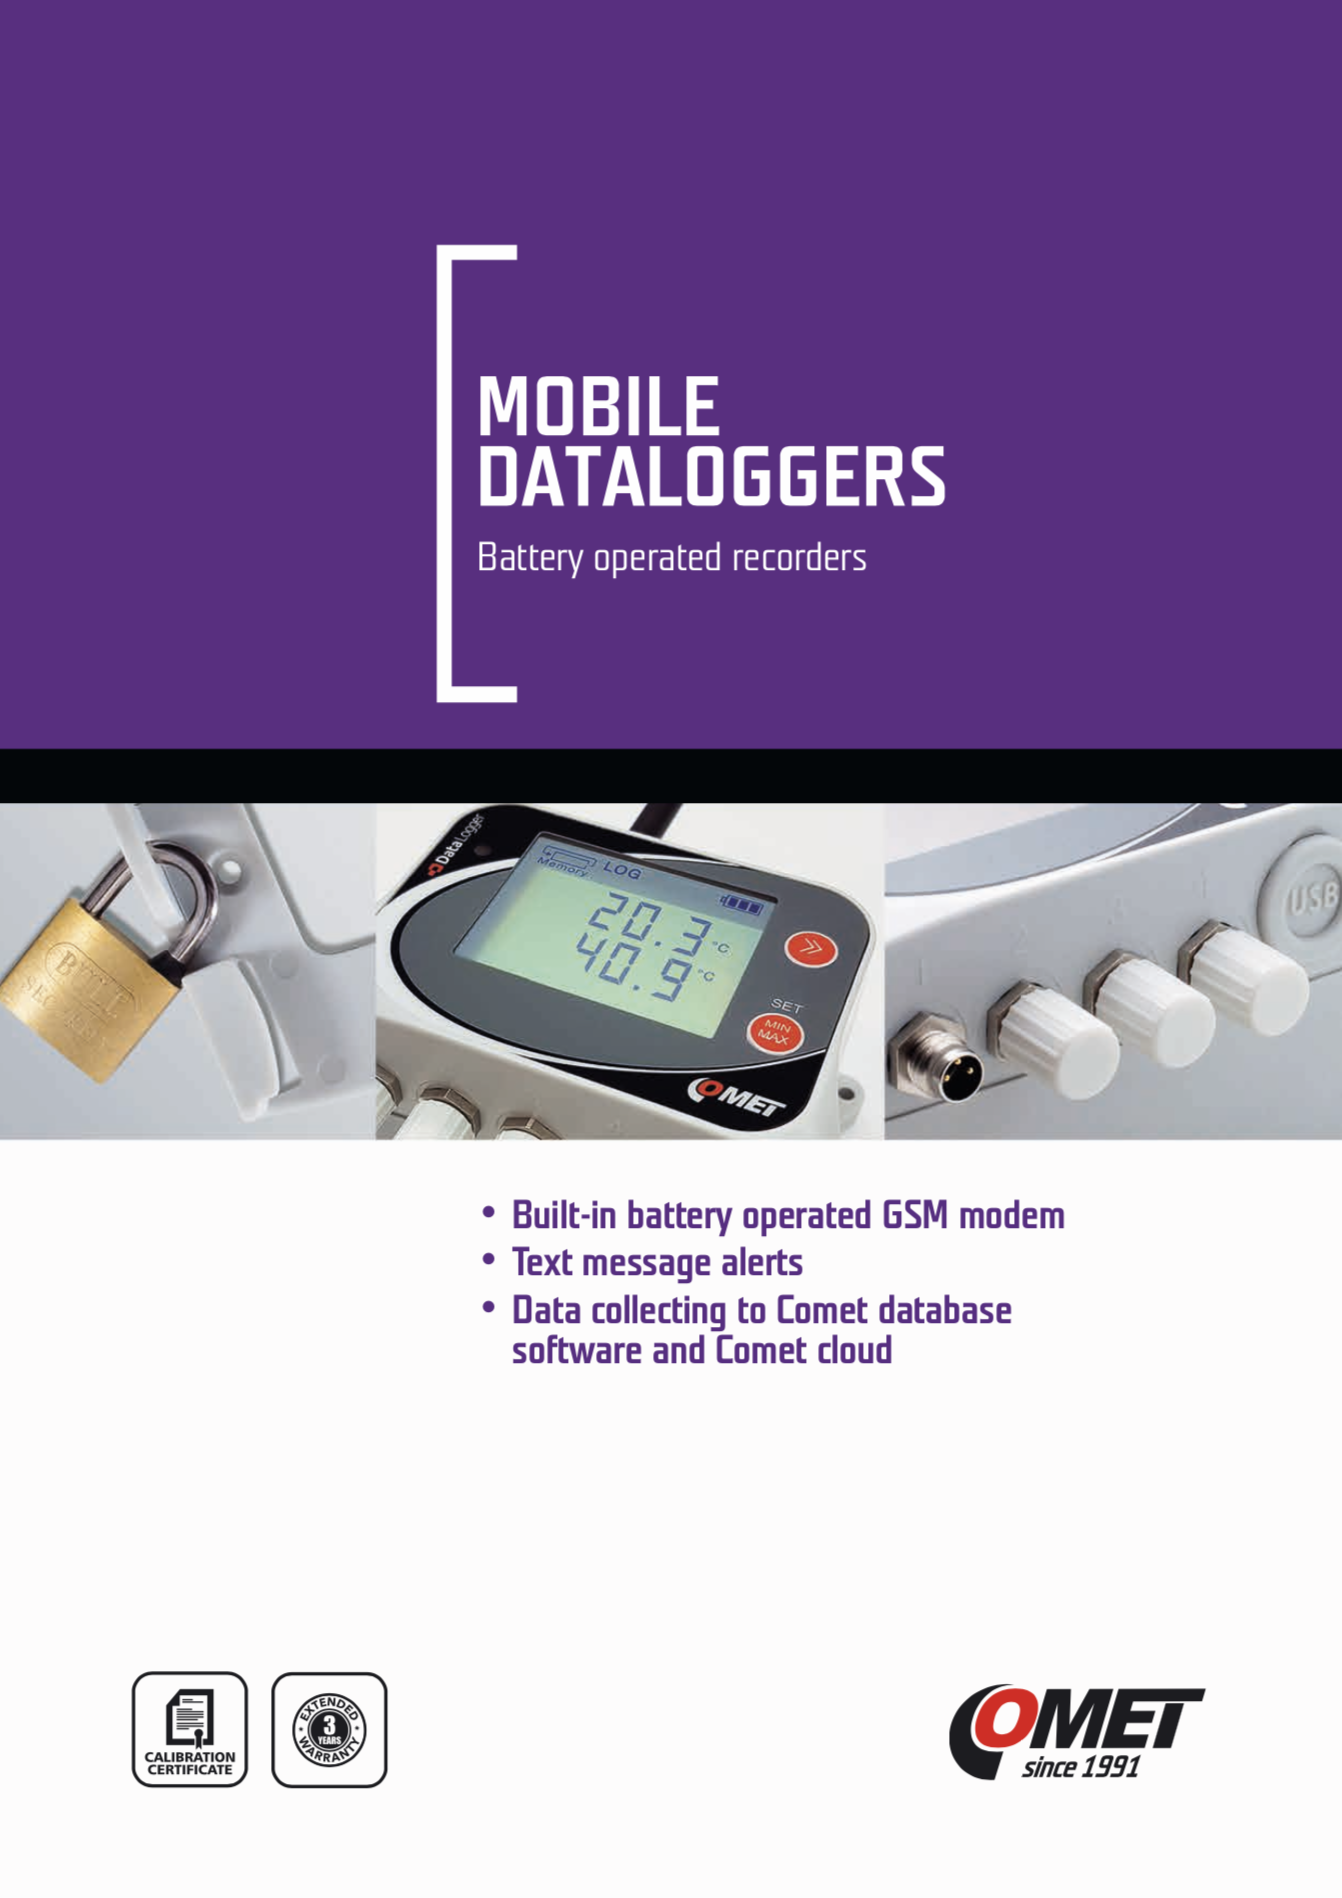 Comet Mobile Dataloggers